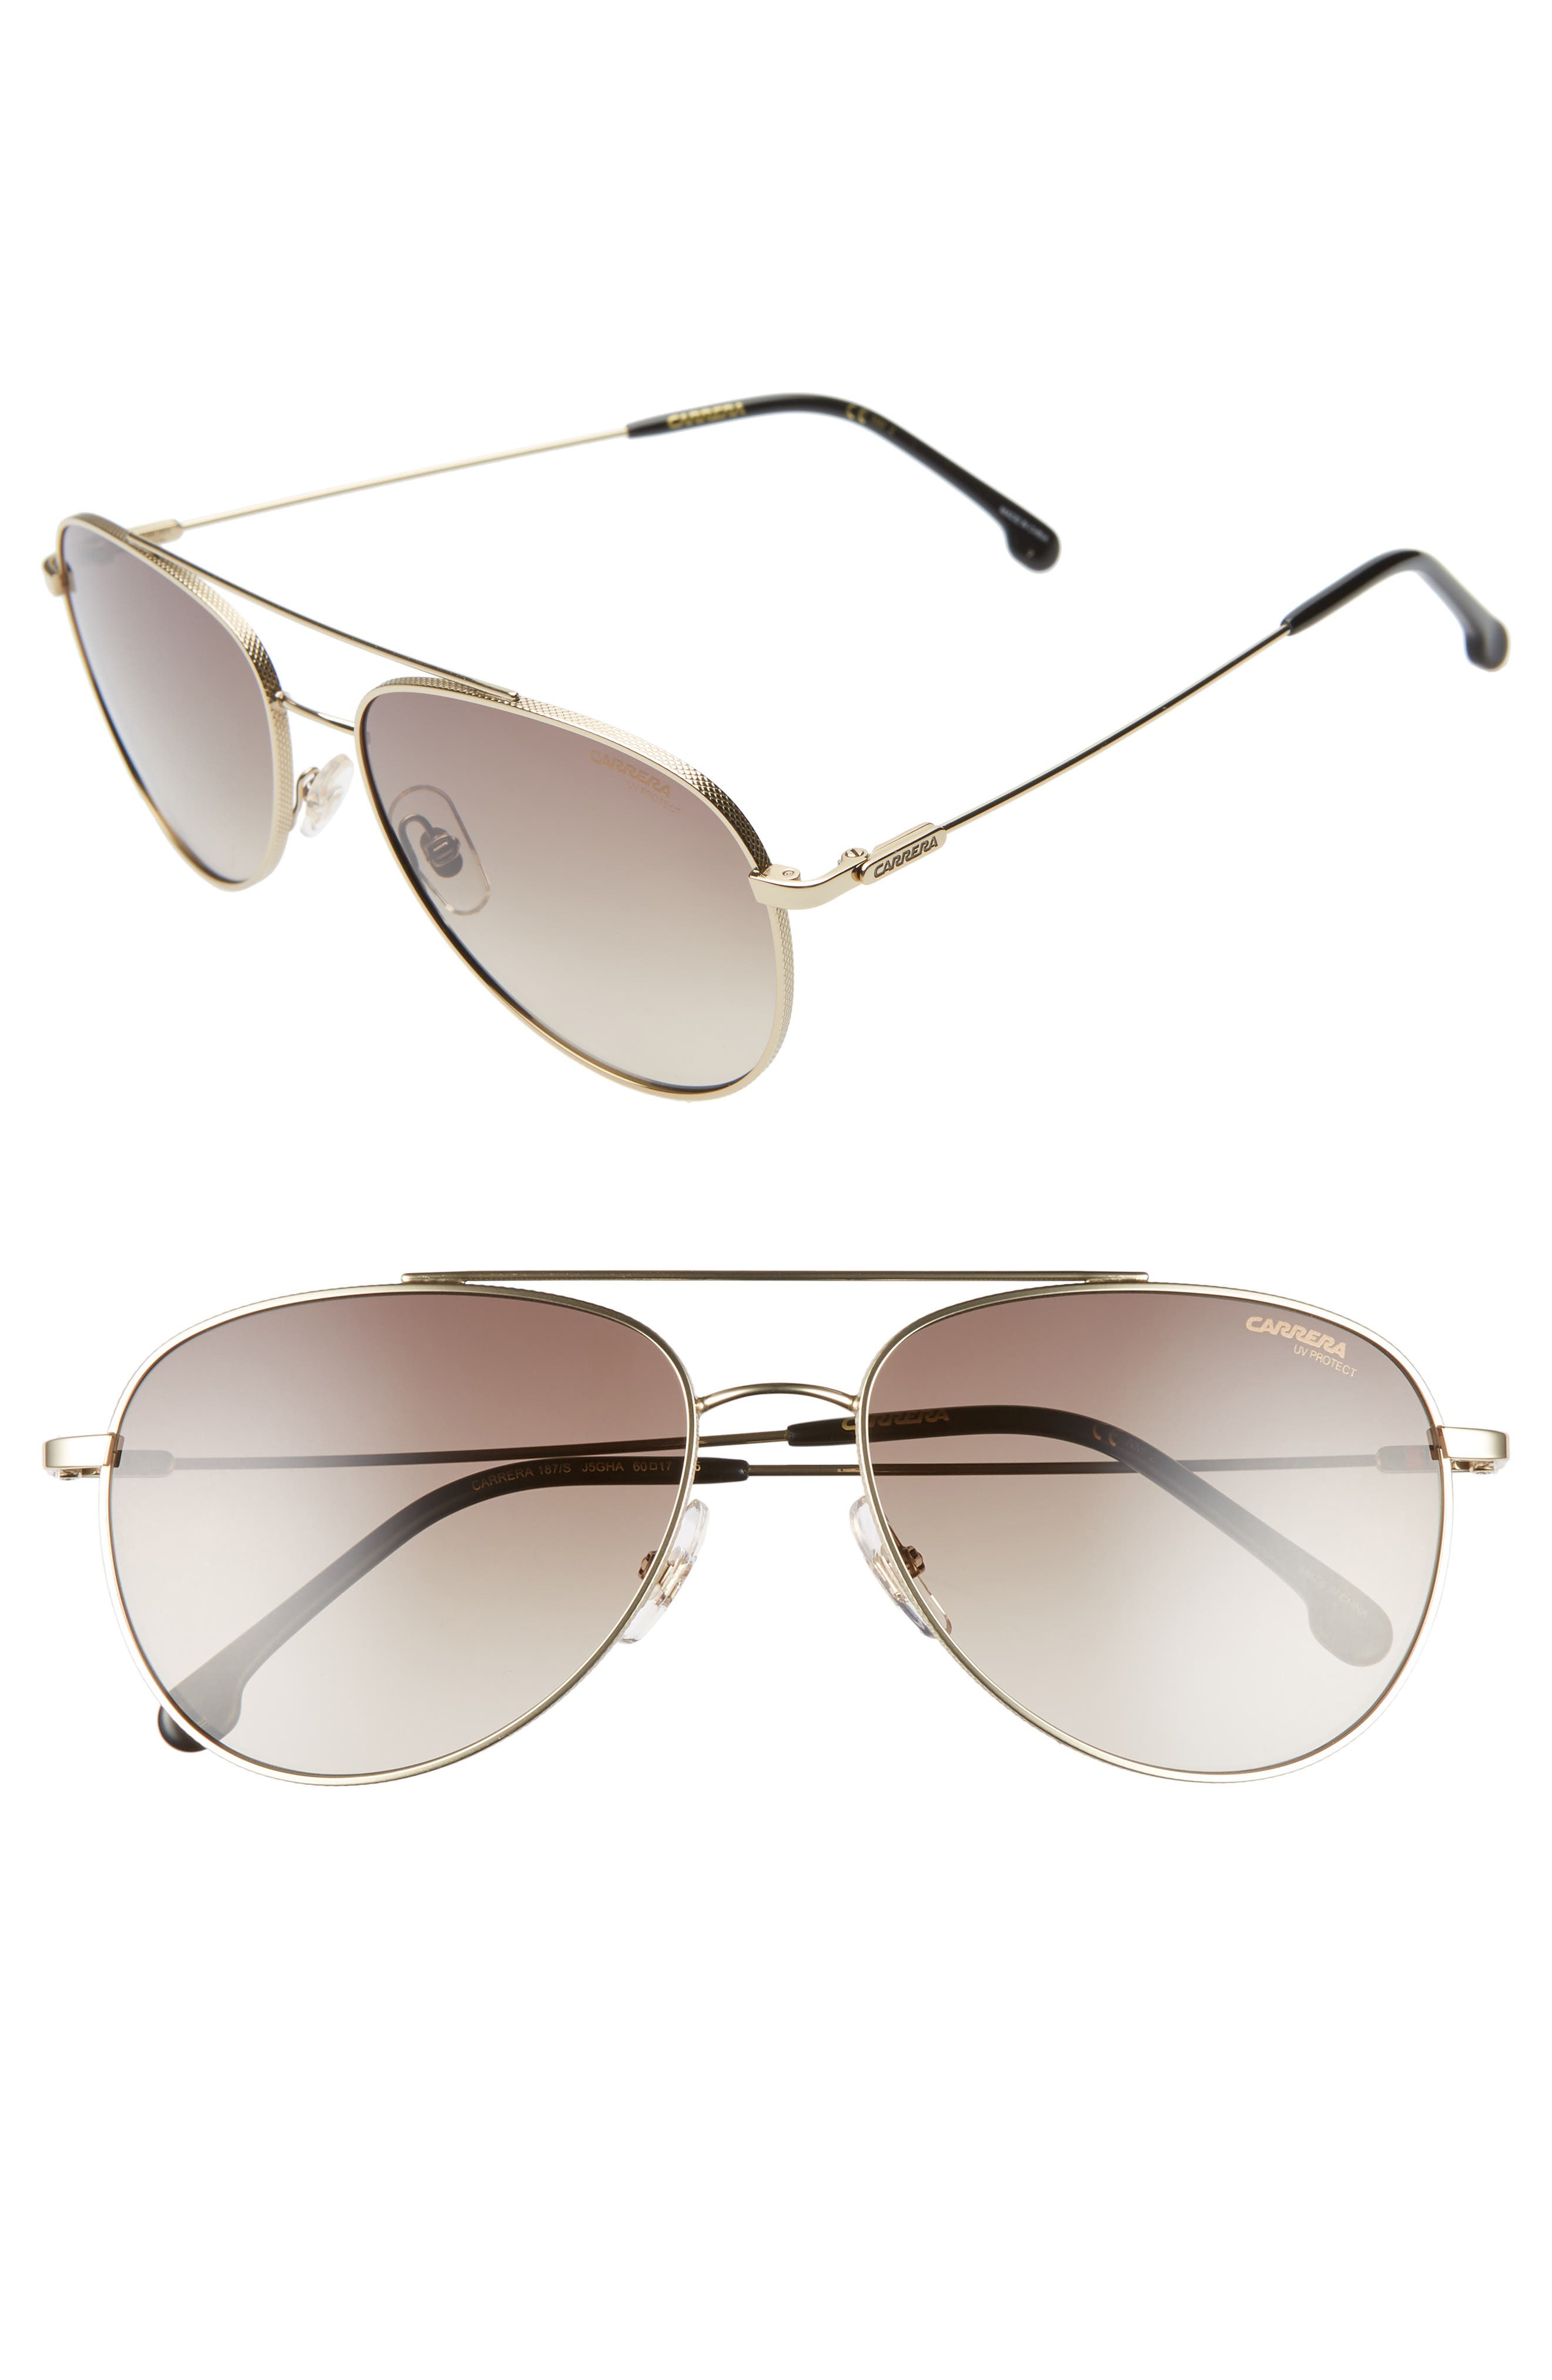 Carrera Eyewear 60Mm Aviator Sunglasses - Gold